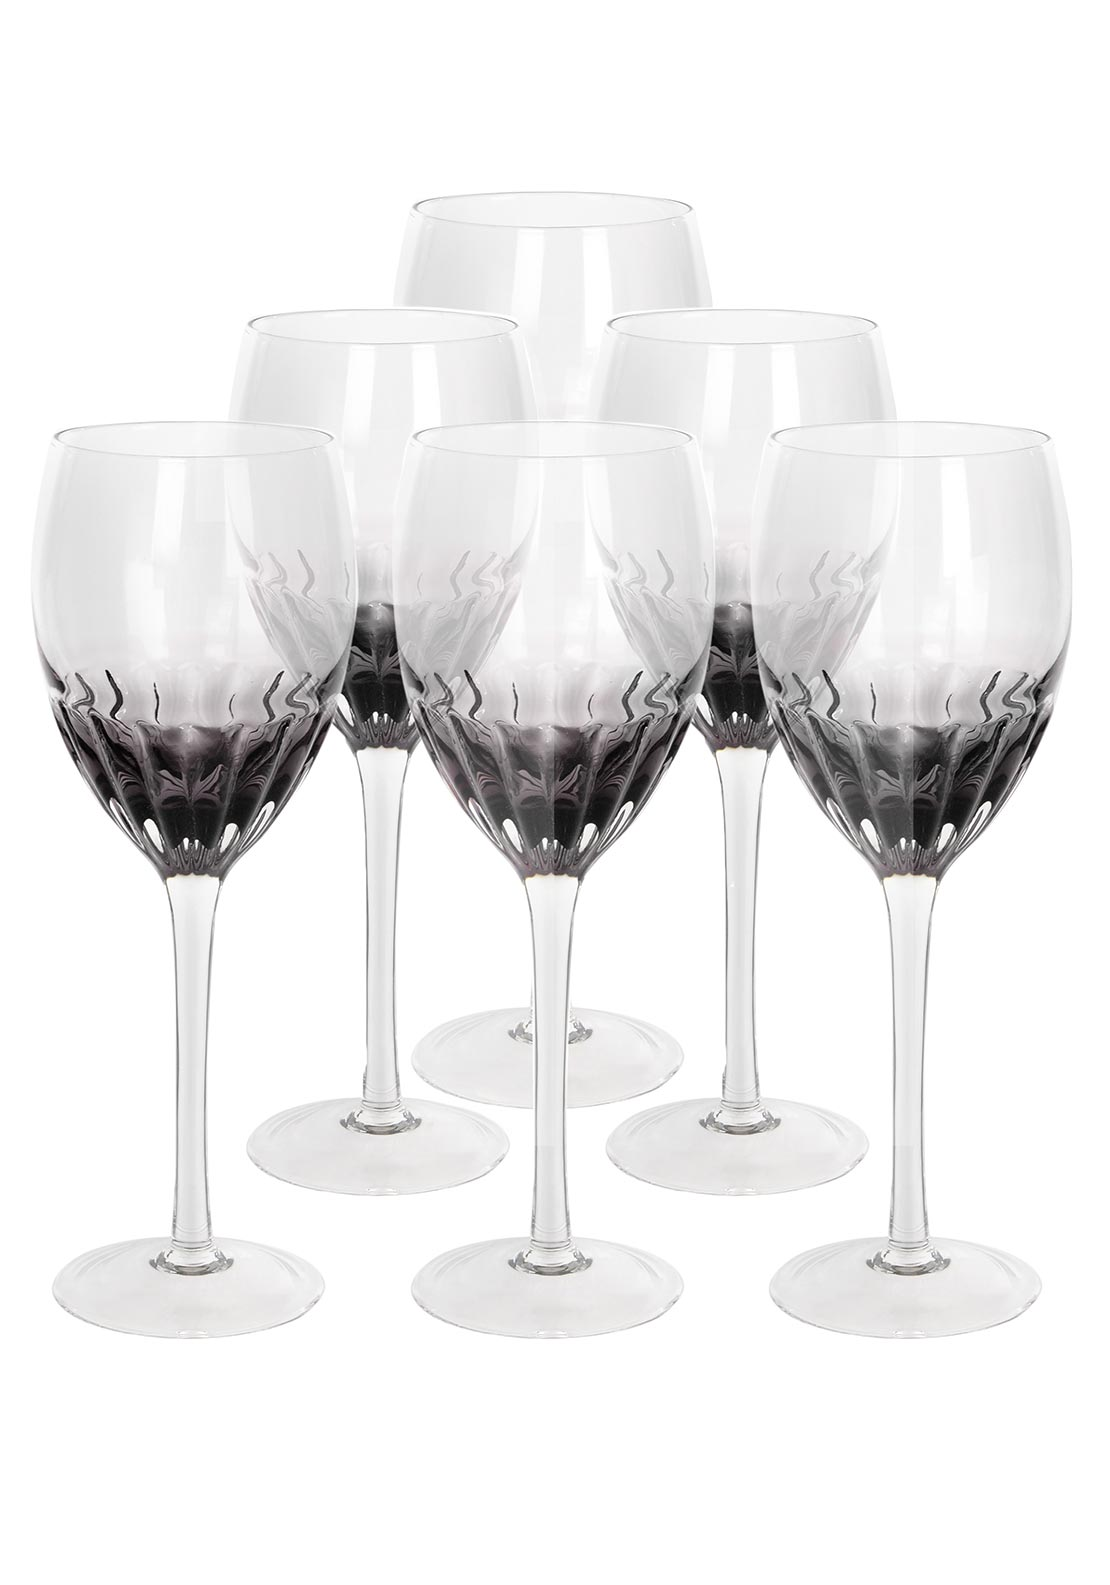 Newgrange Living Smoky Lumina Wine Glass, Set of 6